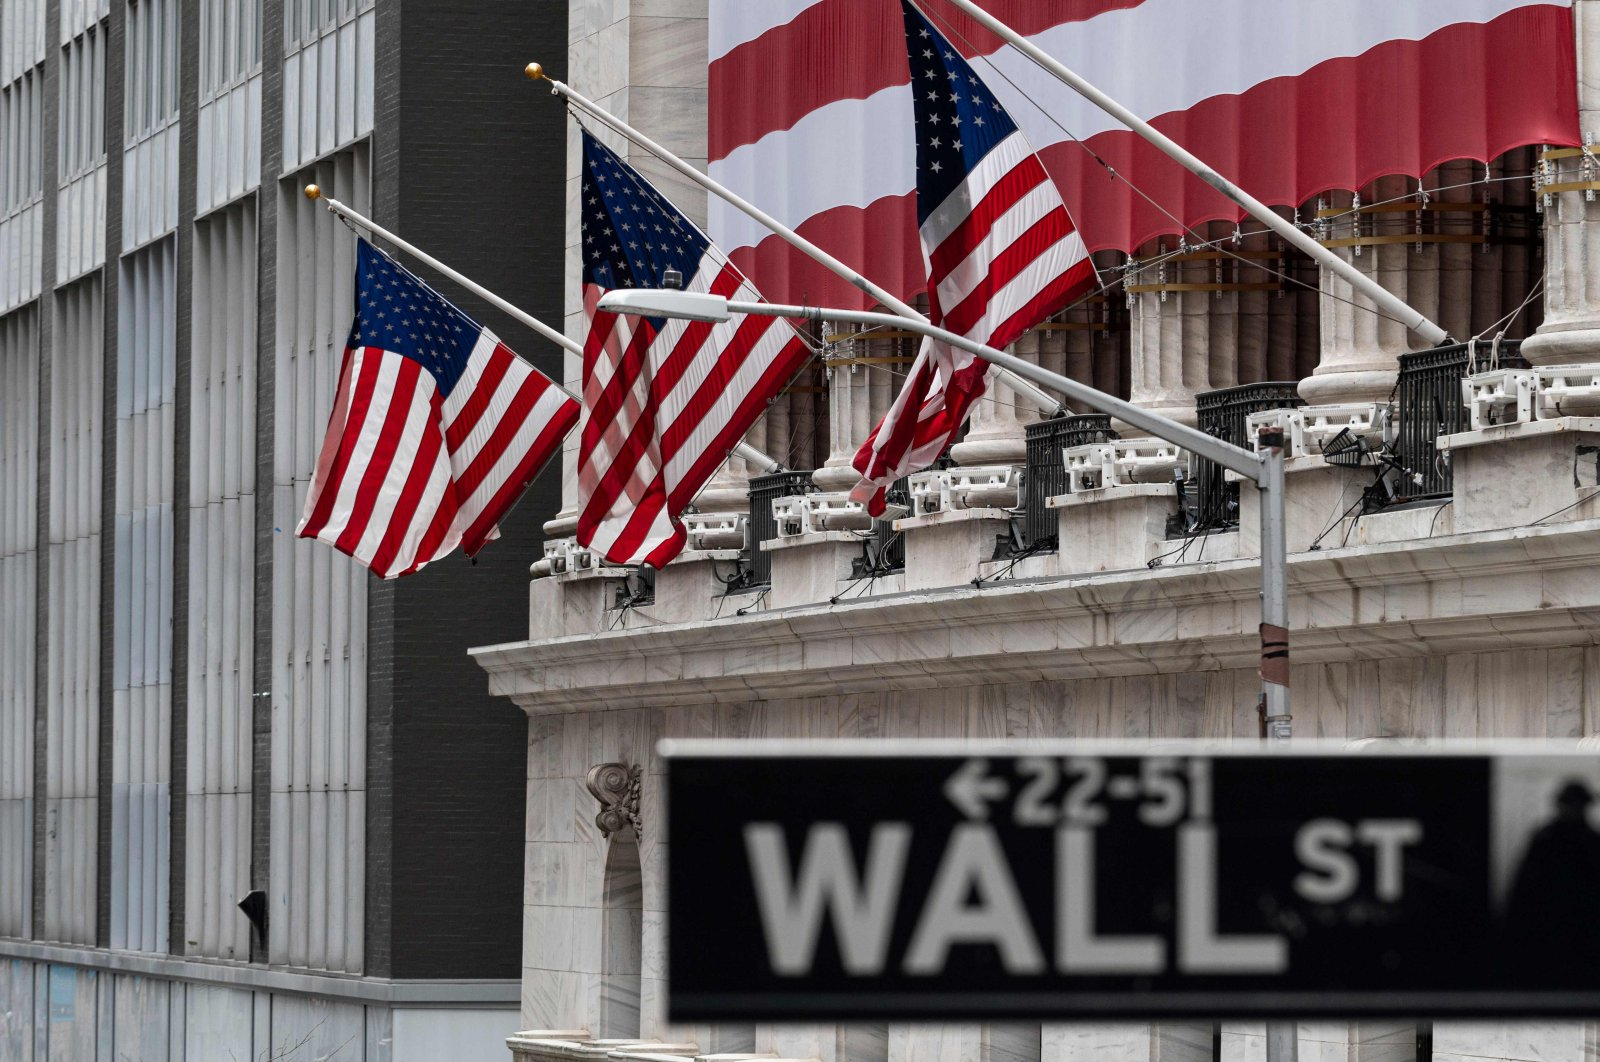 The New York Stock Exchange (NYSE) is pictured on April 20, 2020 at Wall Street in New York City. (AFP Photo)